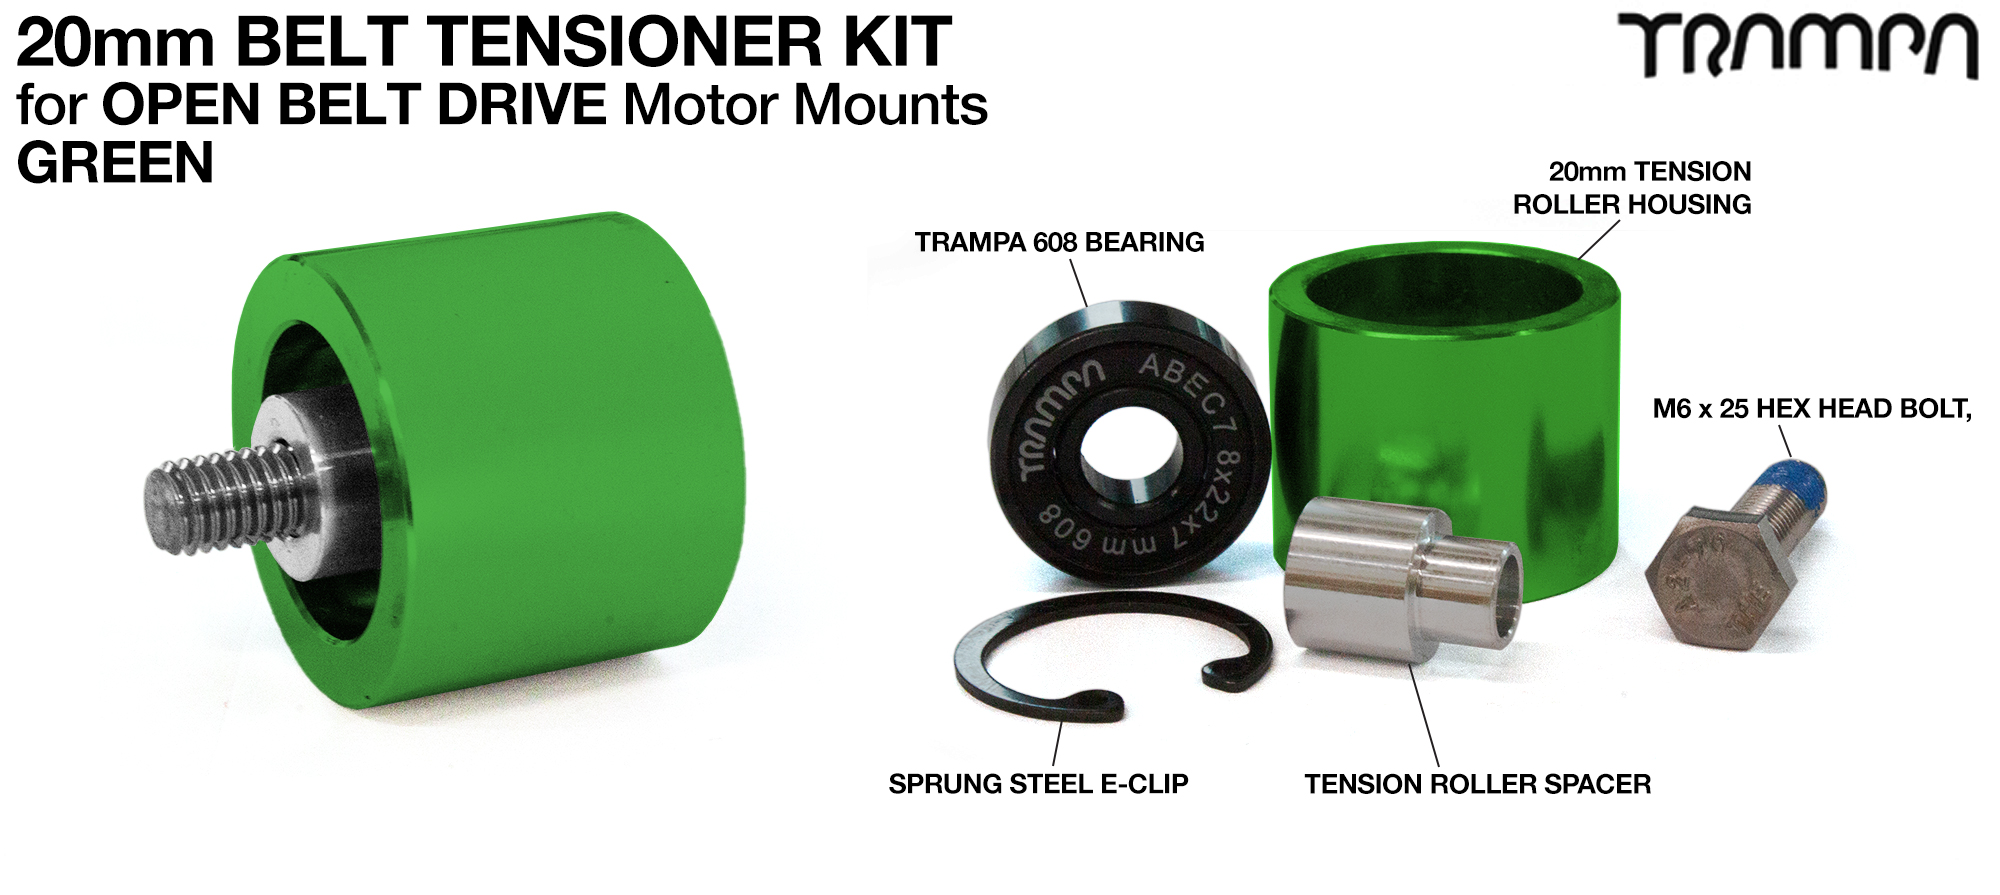 GREEN OBD 20mm Belt Tensioners